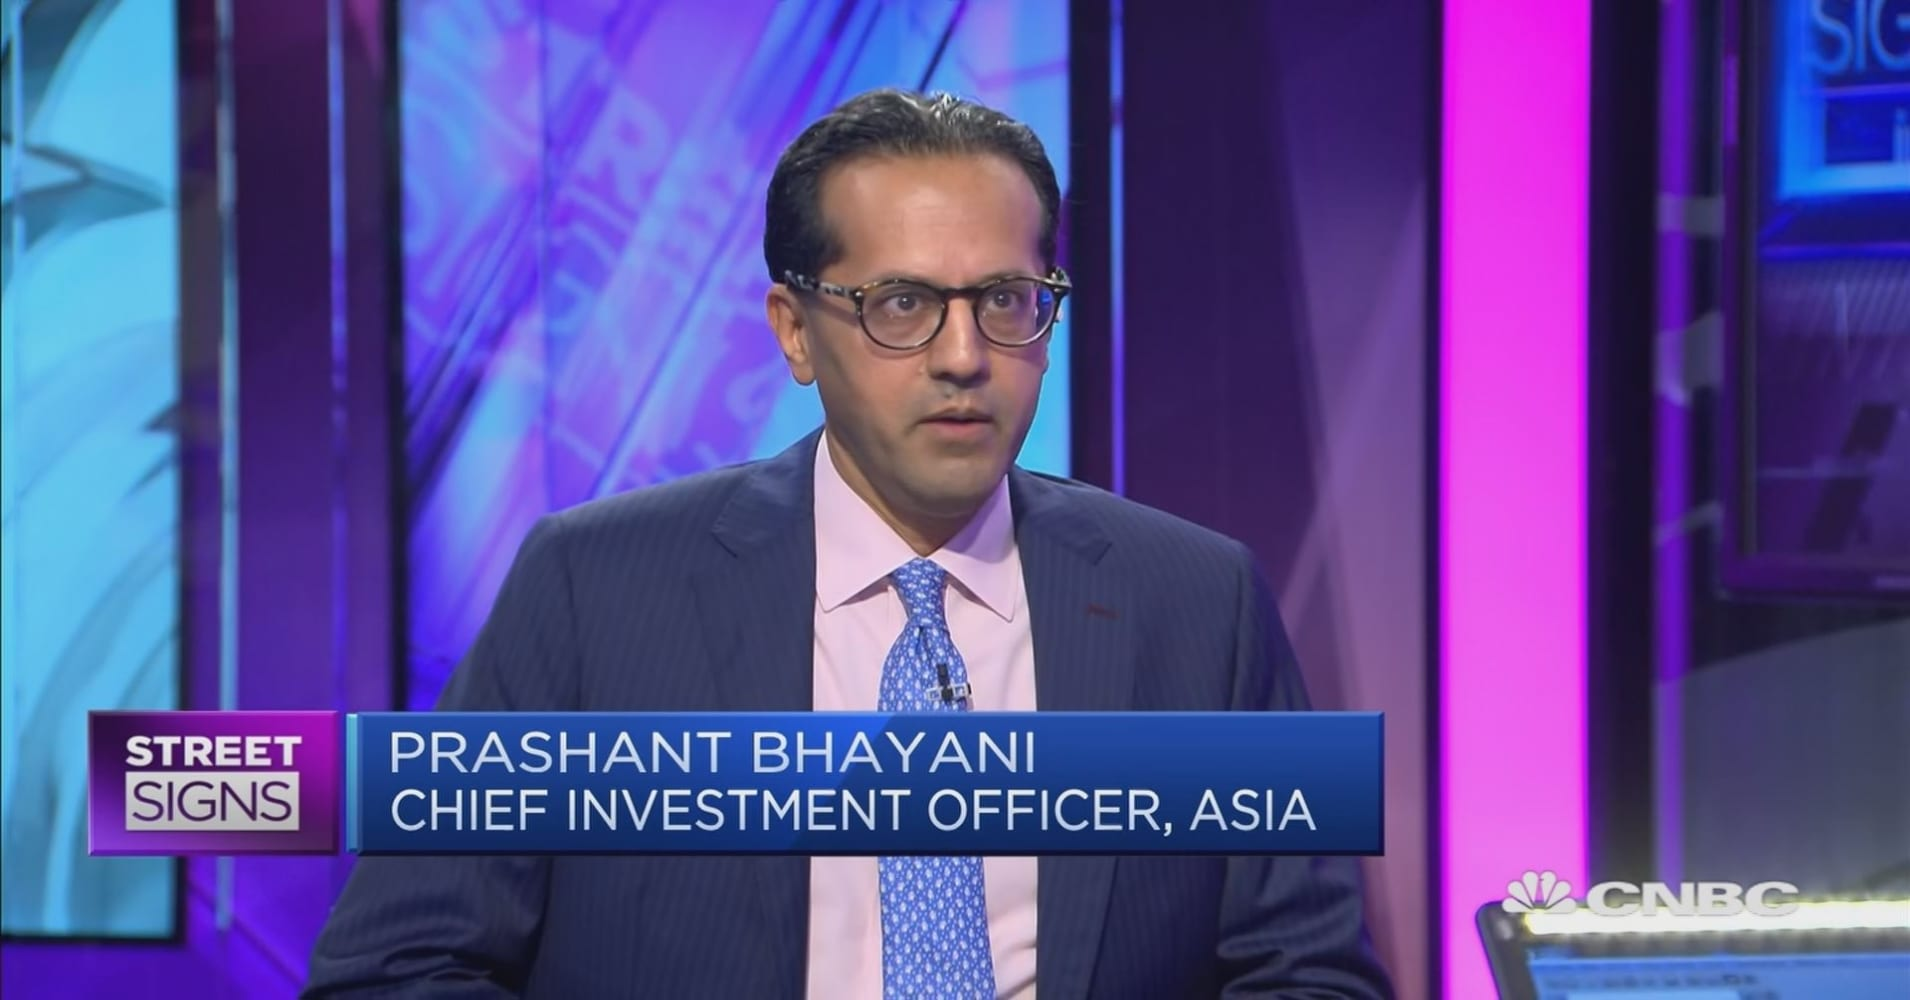 BNP Paribas: Asian stock valuations are 'reasonable'